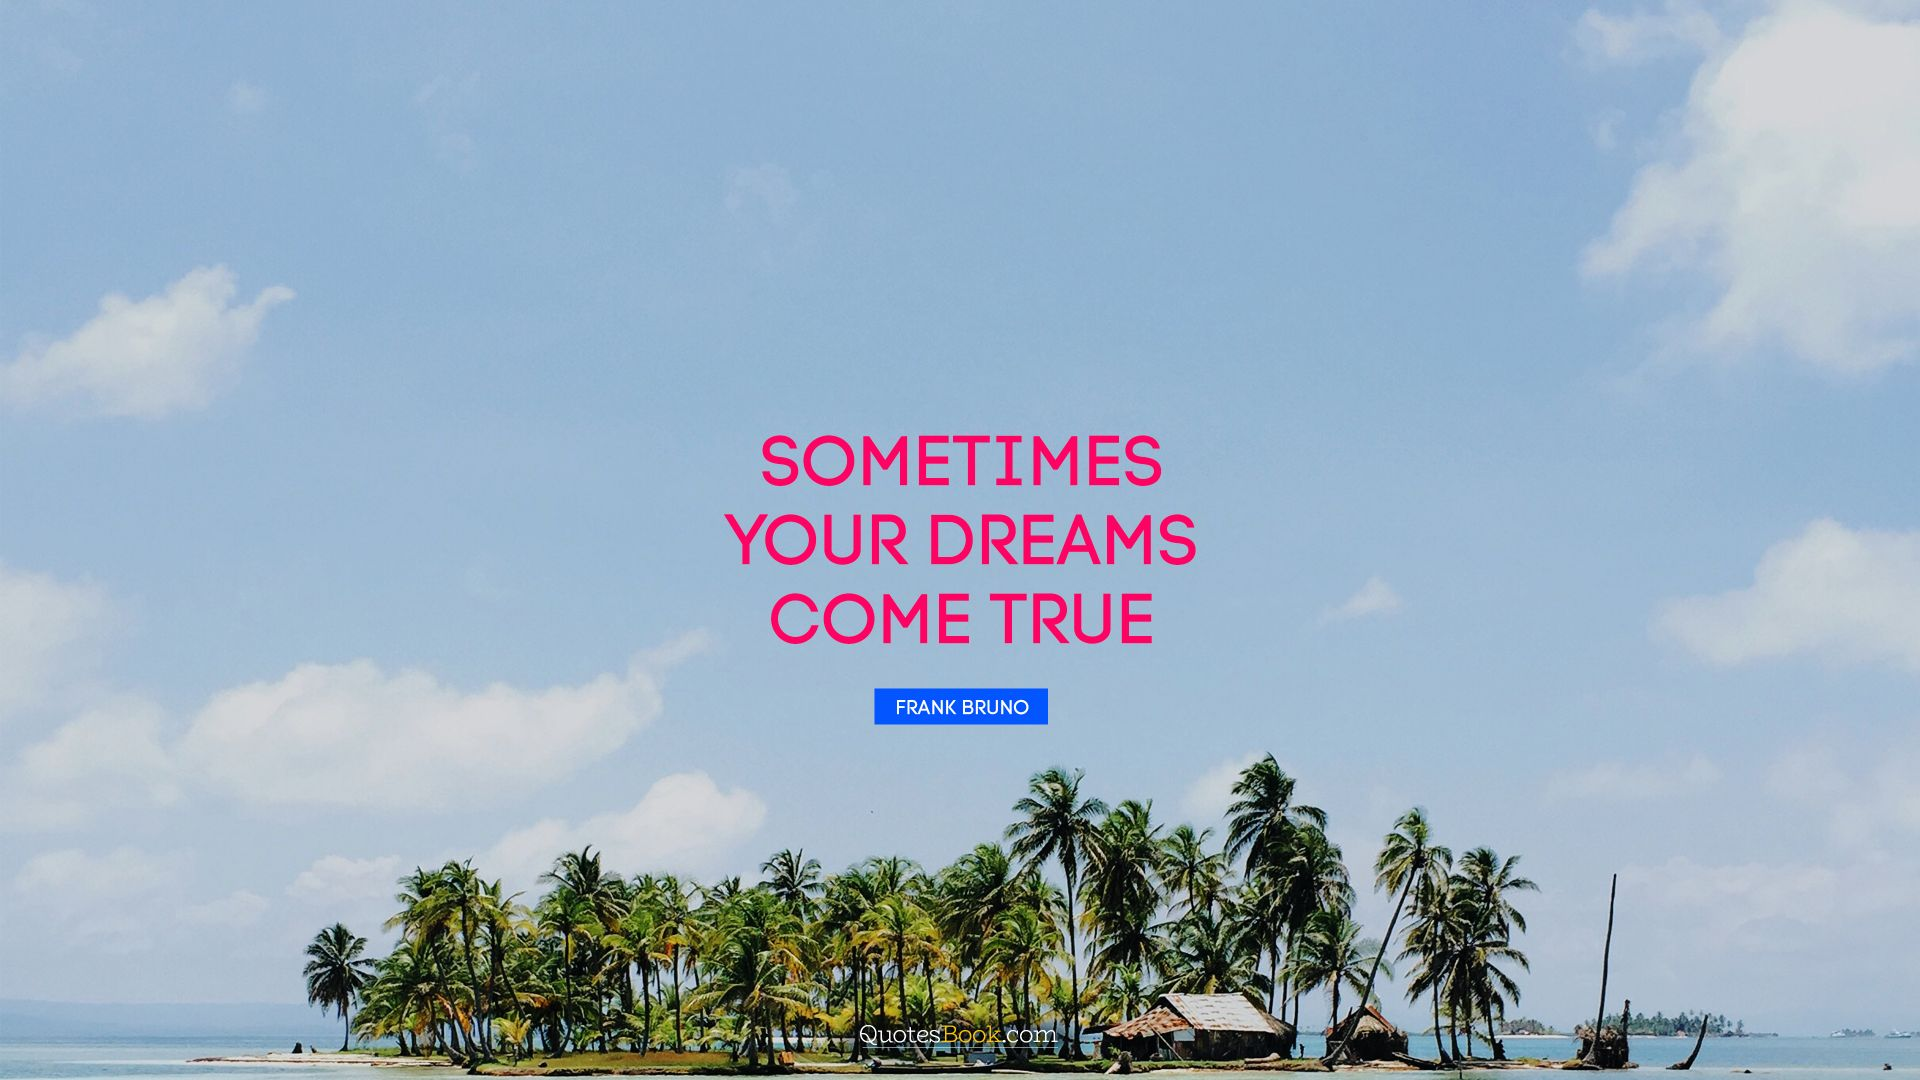 Sometimes your dreams come true. - Quote by Frank Bruno